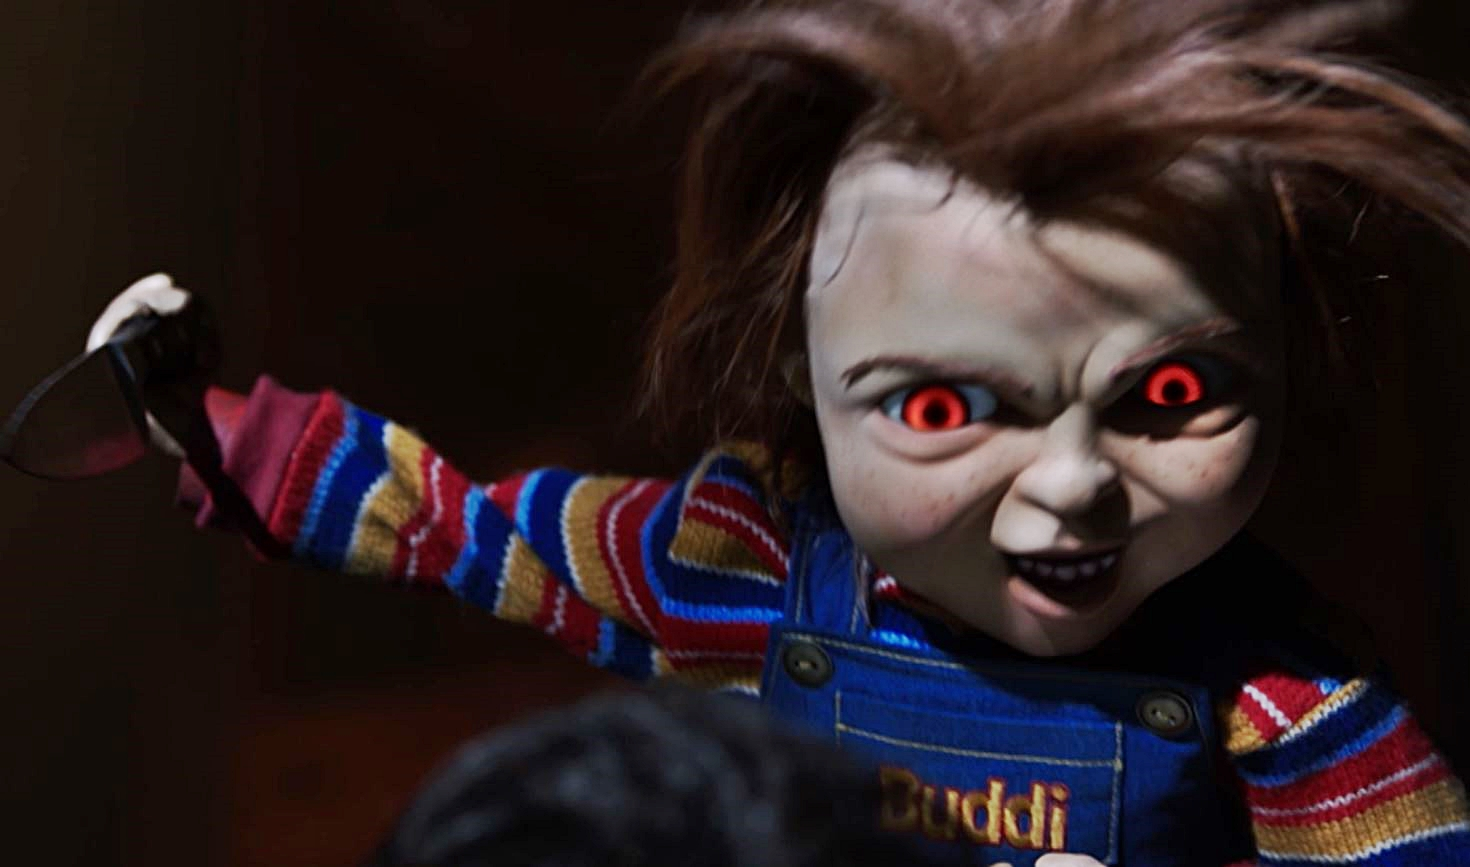 Is Child's Play trolling Toy Story 4 genius or desperation?